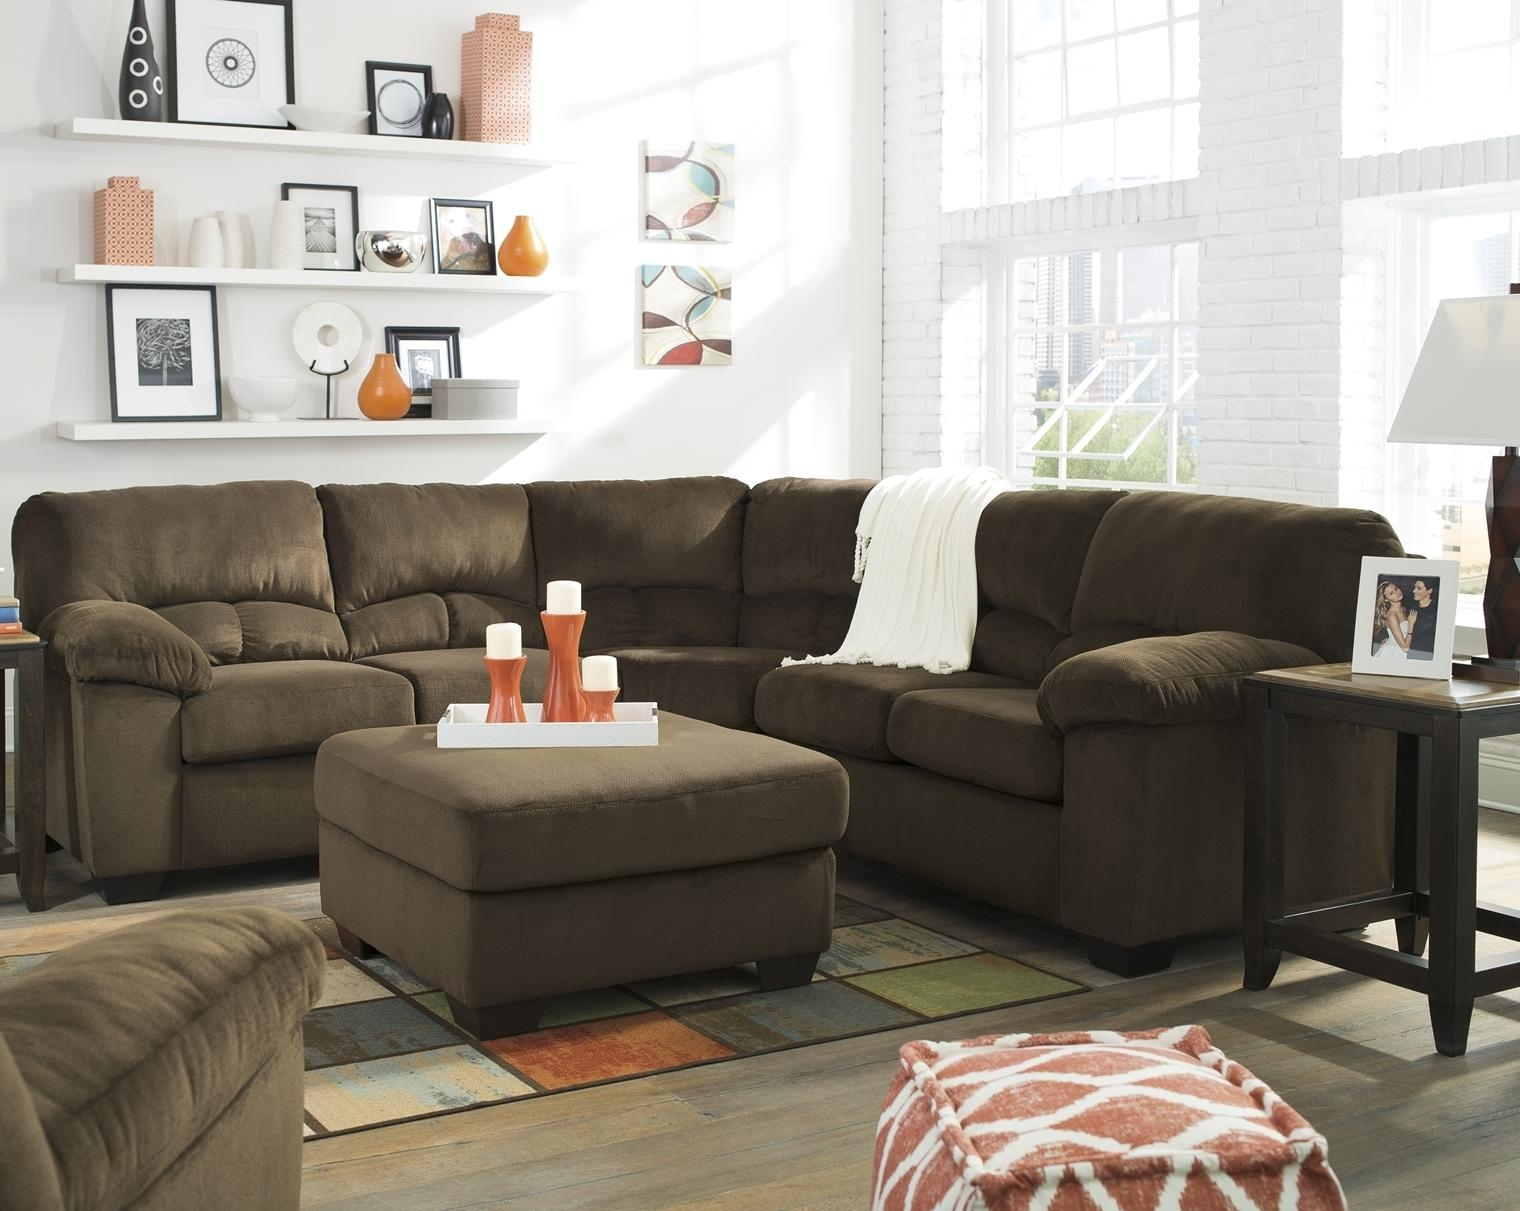 20 inspirations retro sectional couch sofa ideas for Luxury furniture for less